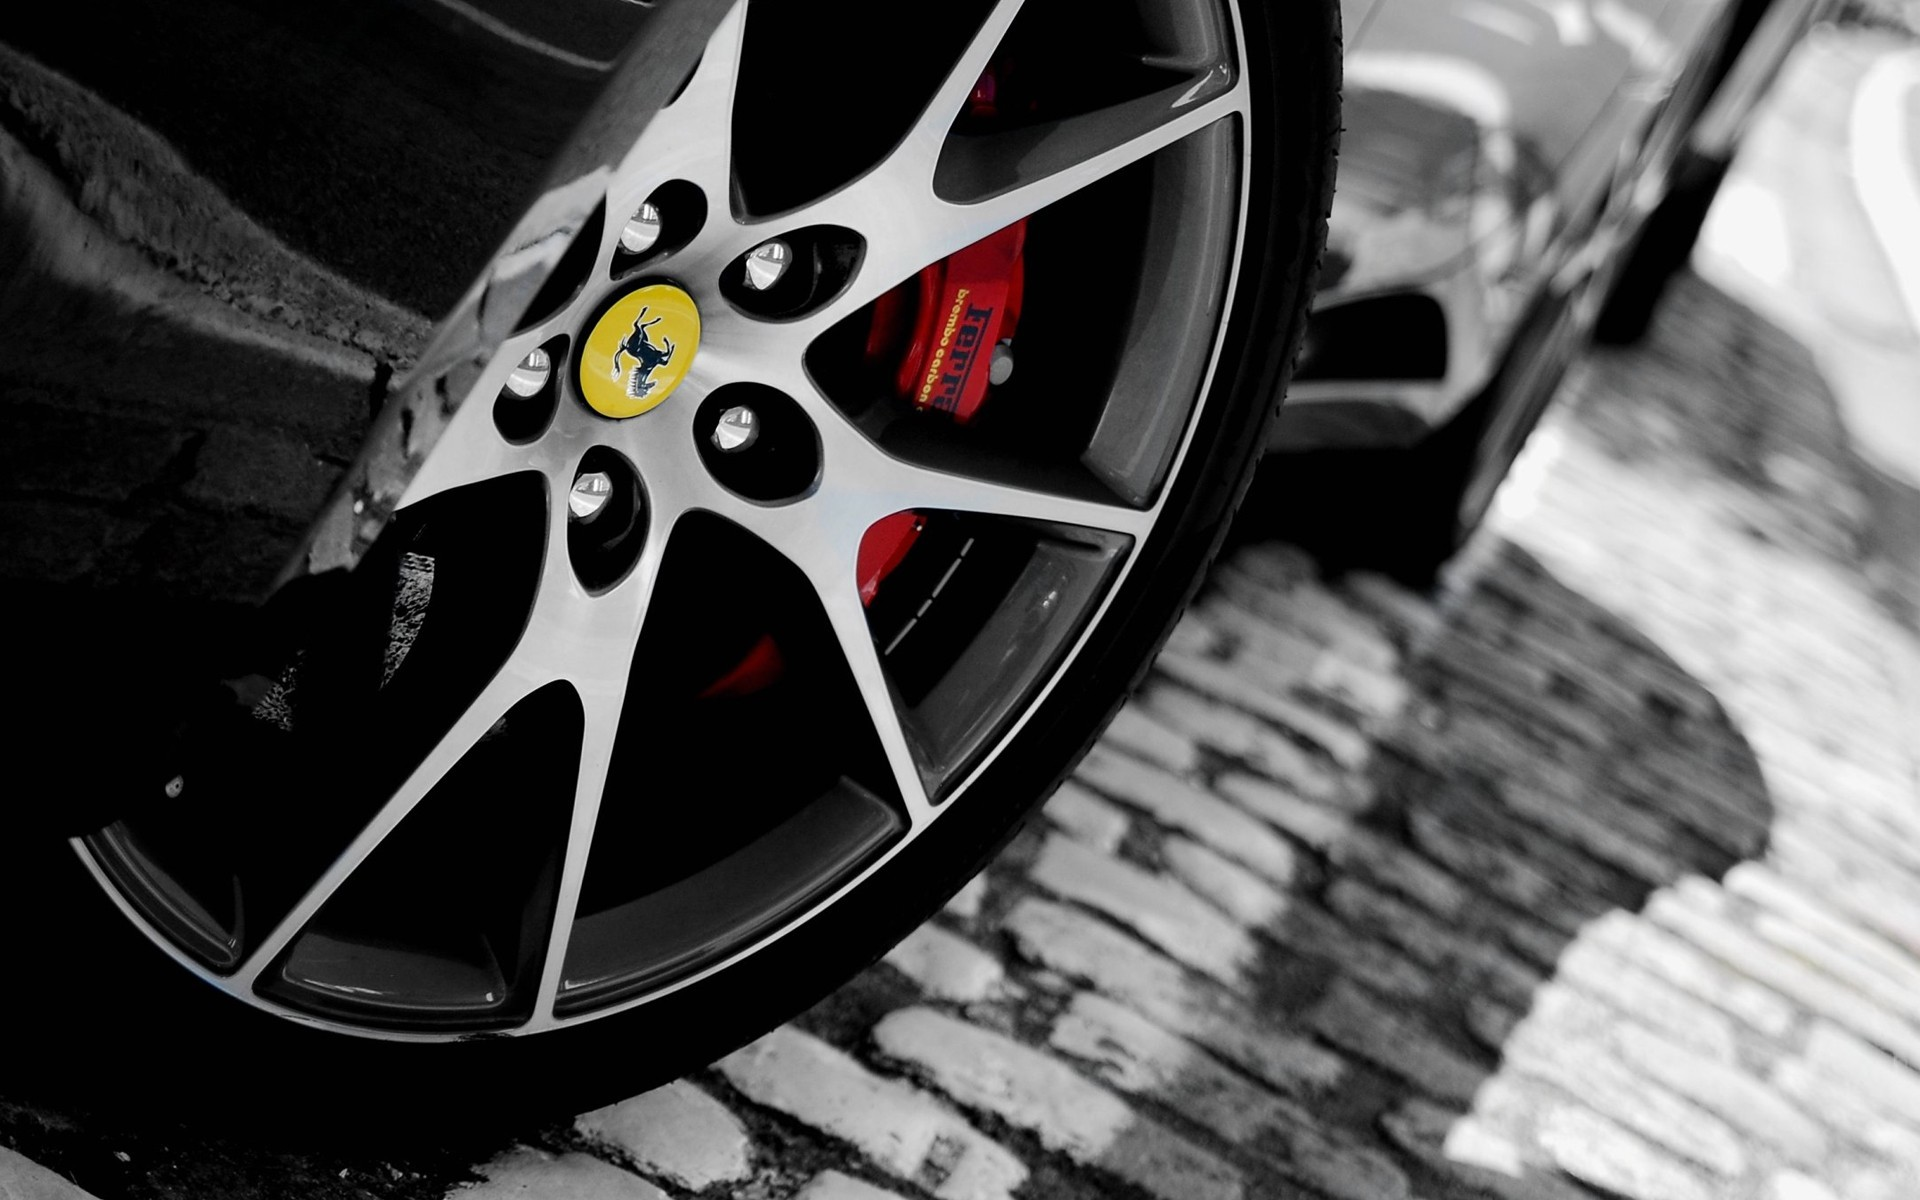 Ferrari California rim HD Wallpaper